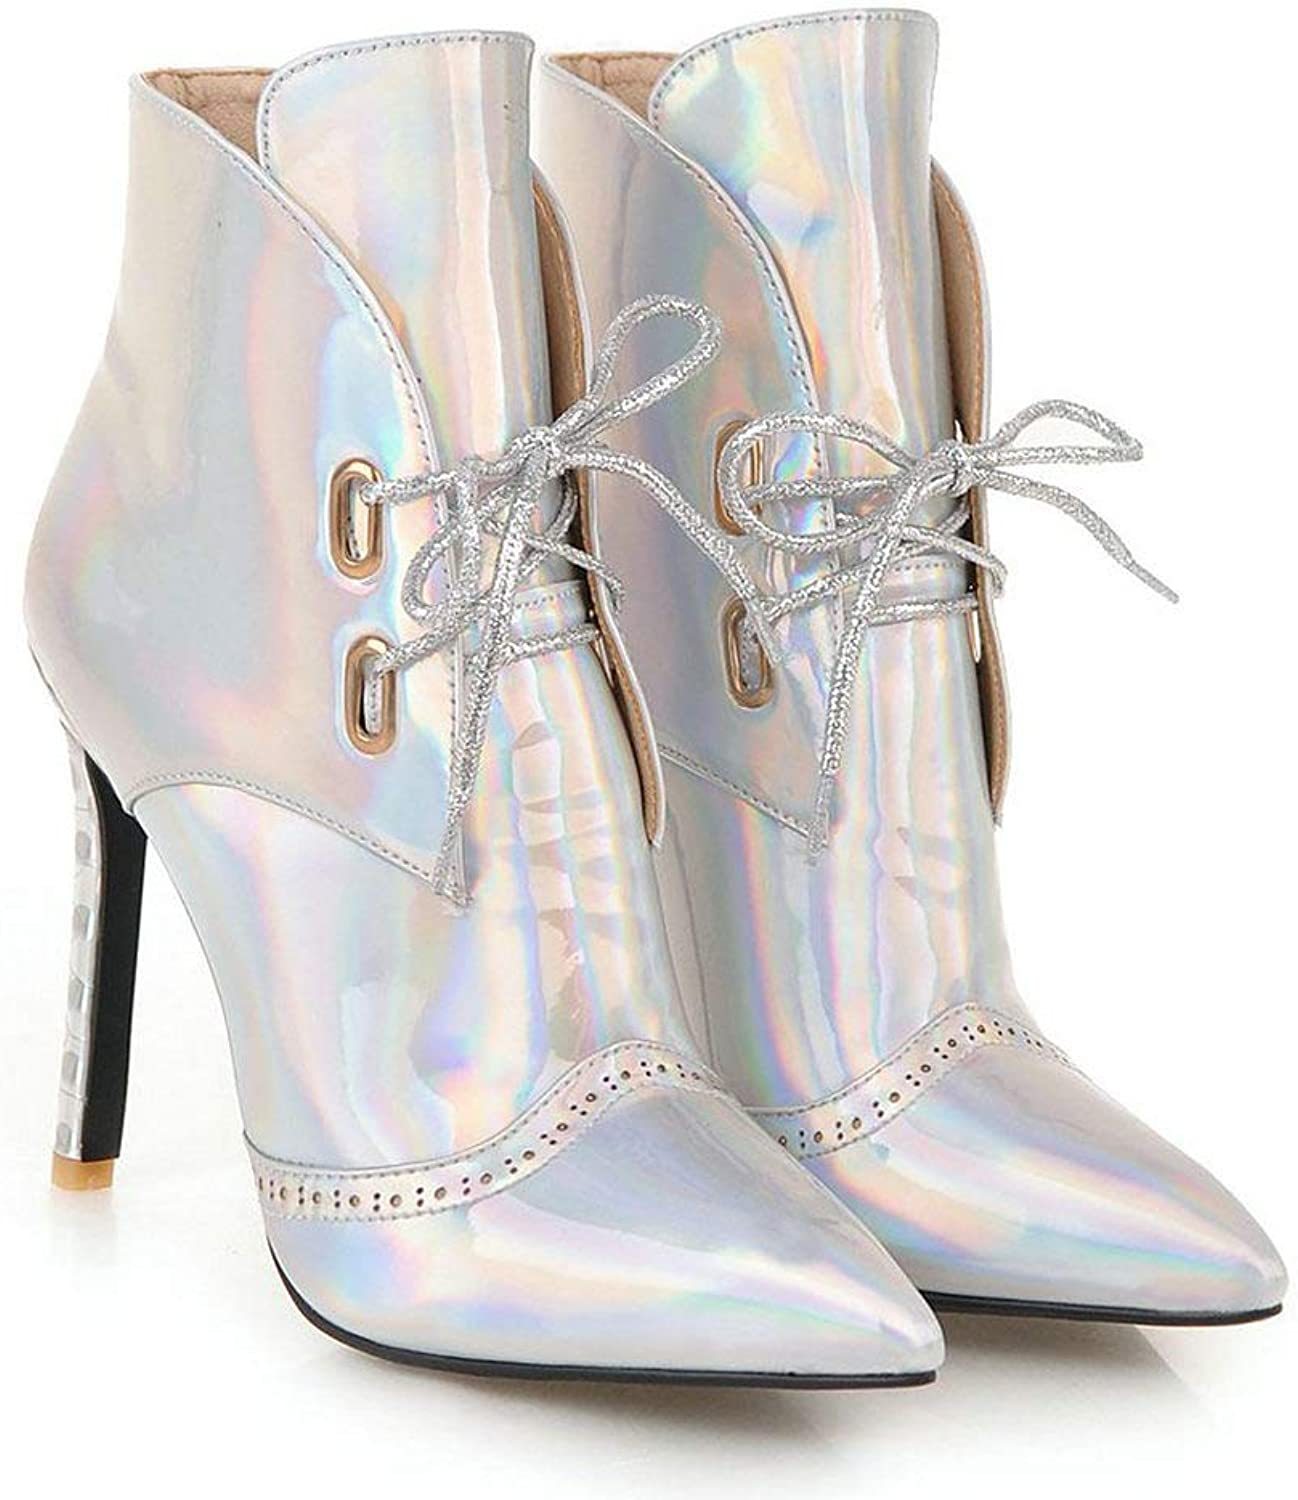 AnMengXinLing Sexy Ankle Boots Women Pointed Toe Stiletto High Heel Lace Up Dress Party Wedding Pumps shoes Silver gold